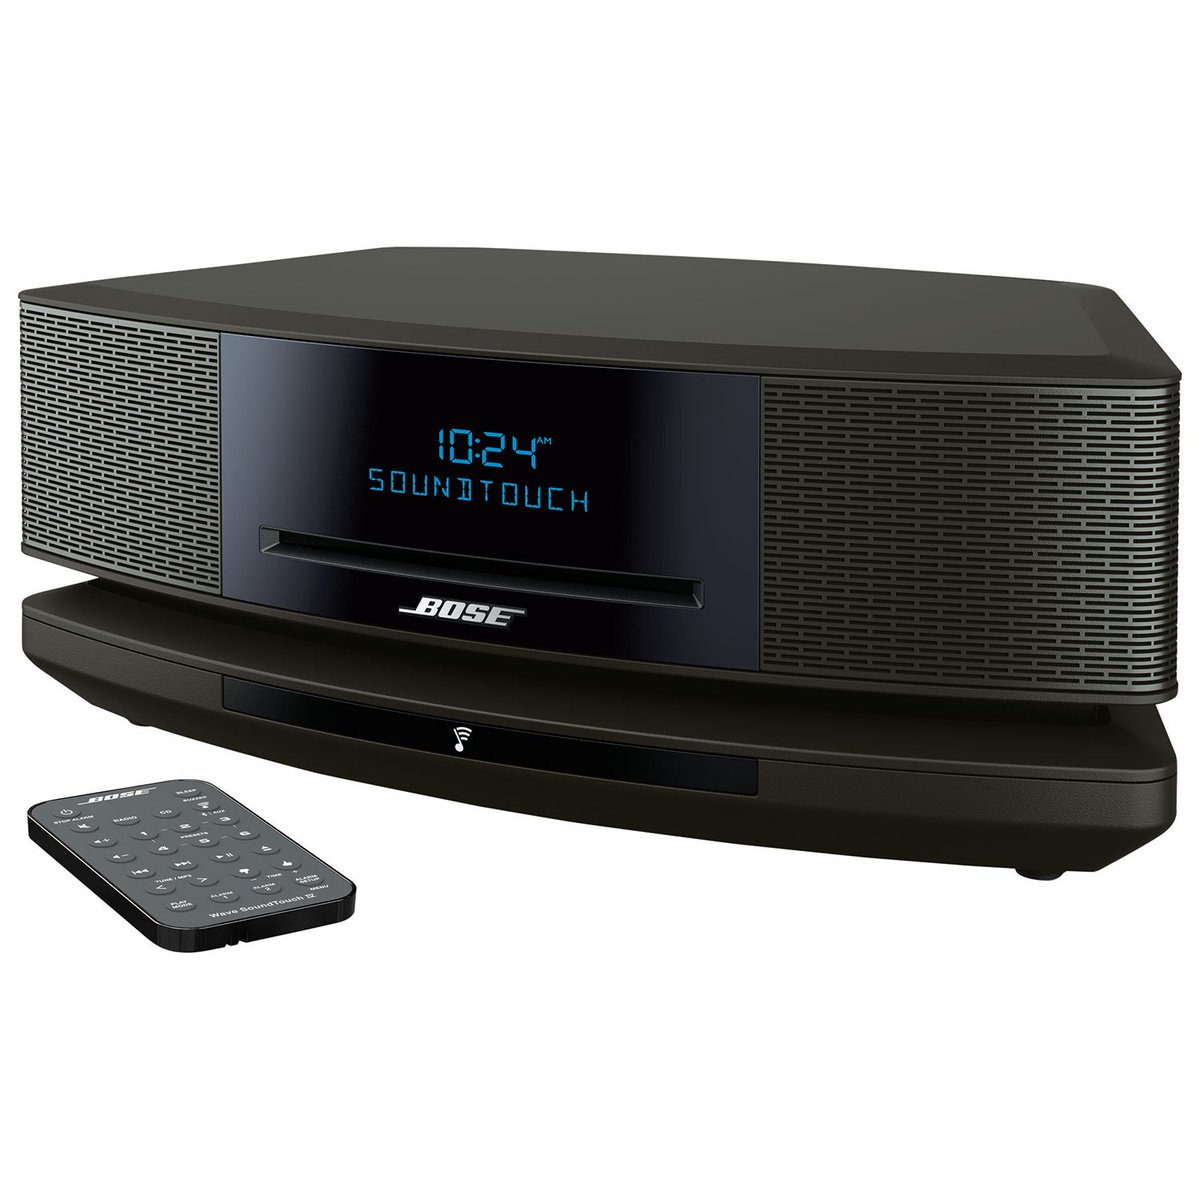 Meuble Tv Sony Home Cinema Best Buy Circulaire Hebdomadaire Circulaire 17 Mai Jusqu à 23 Mai